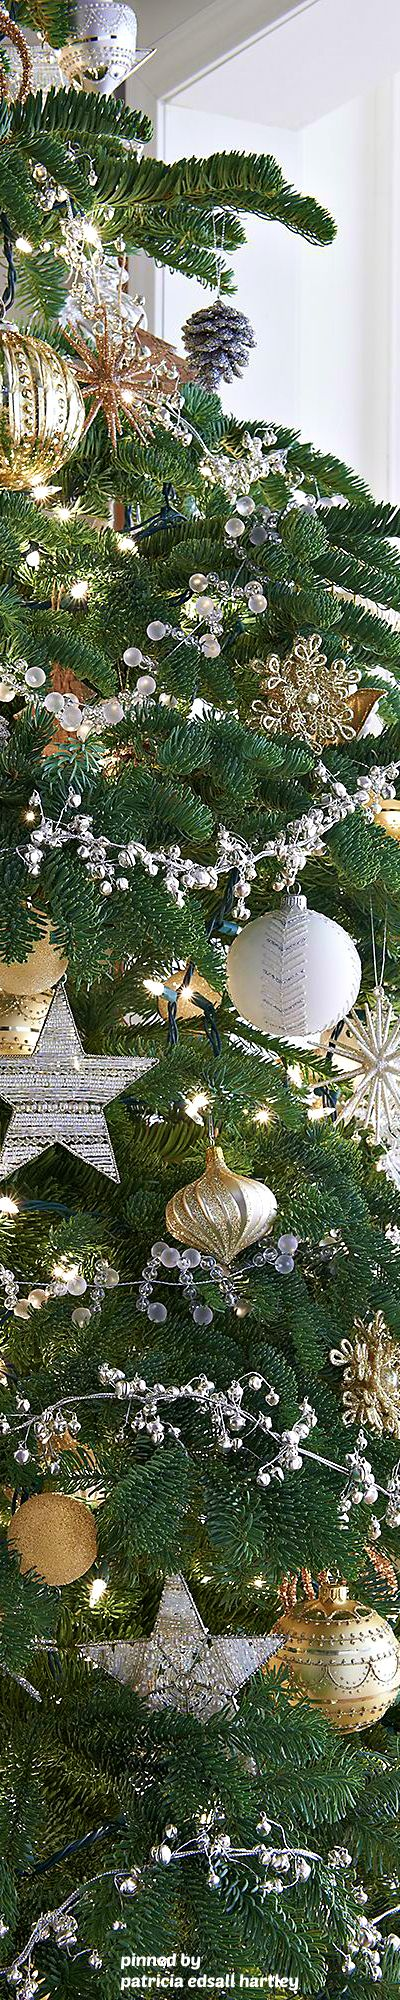 1523 best Trees, Wreaths, Garland, & More images on Pinterest ...